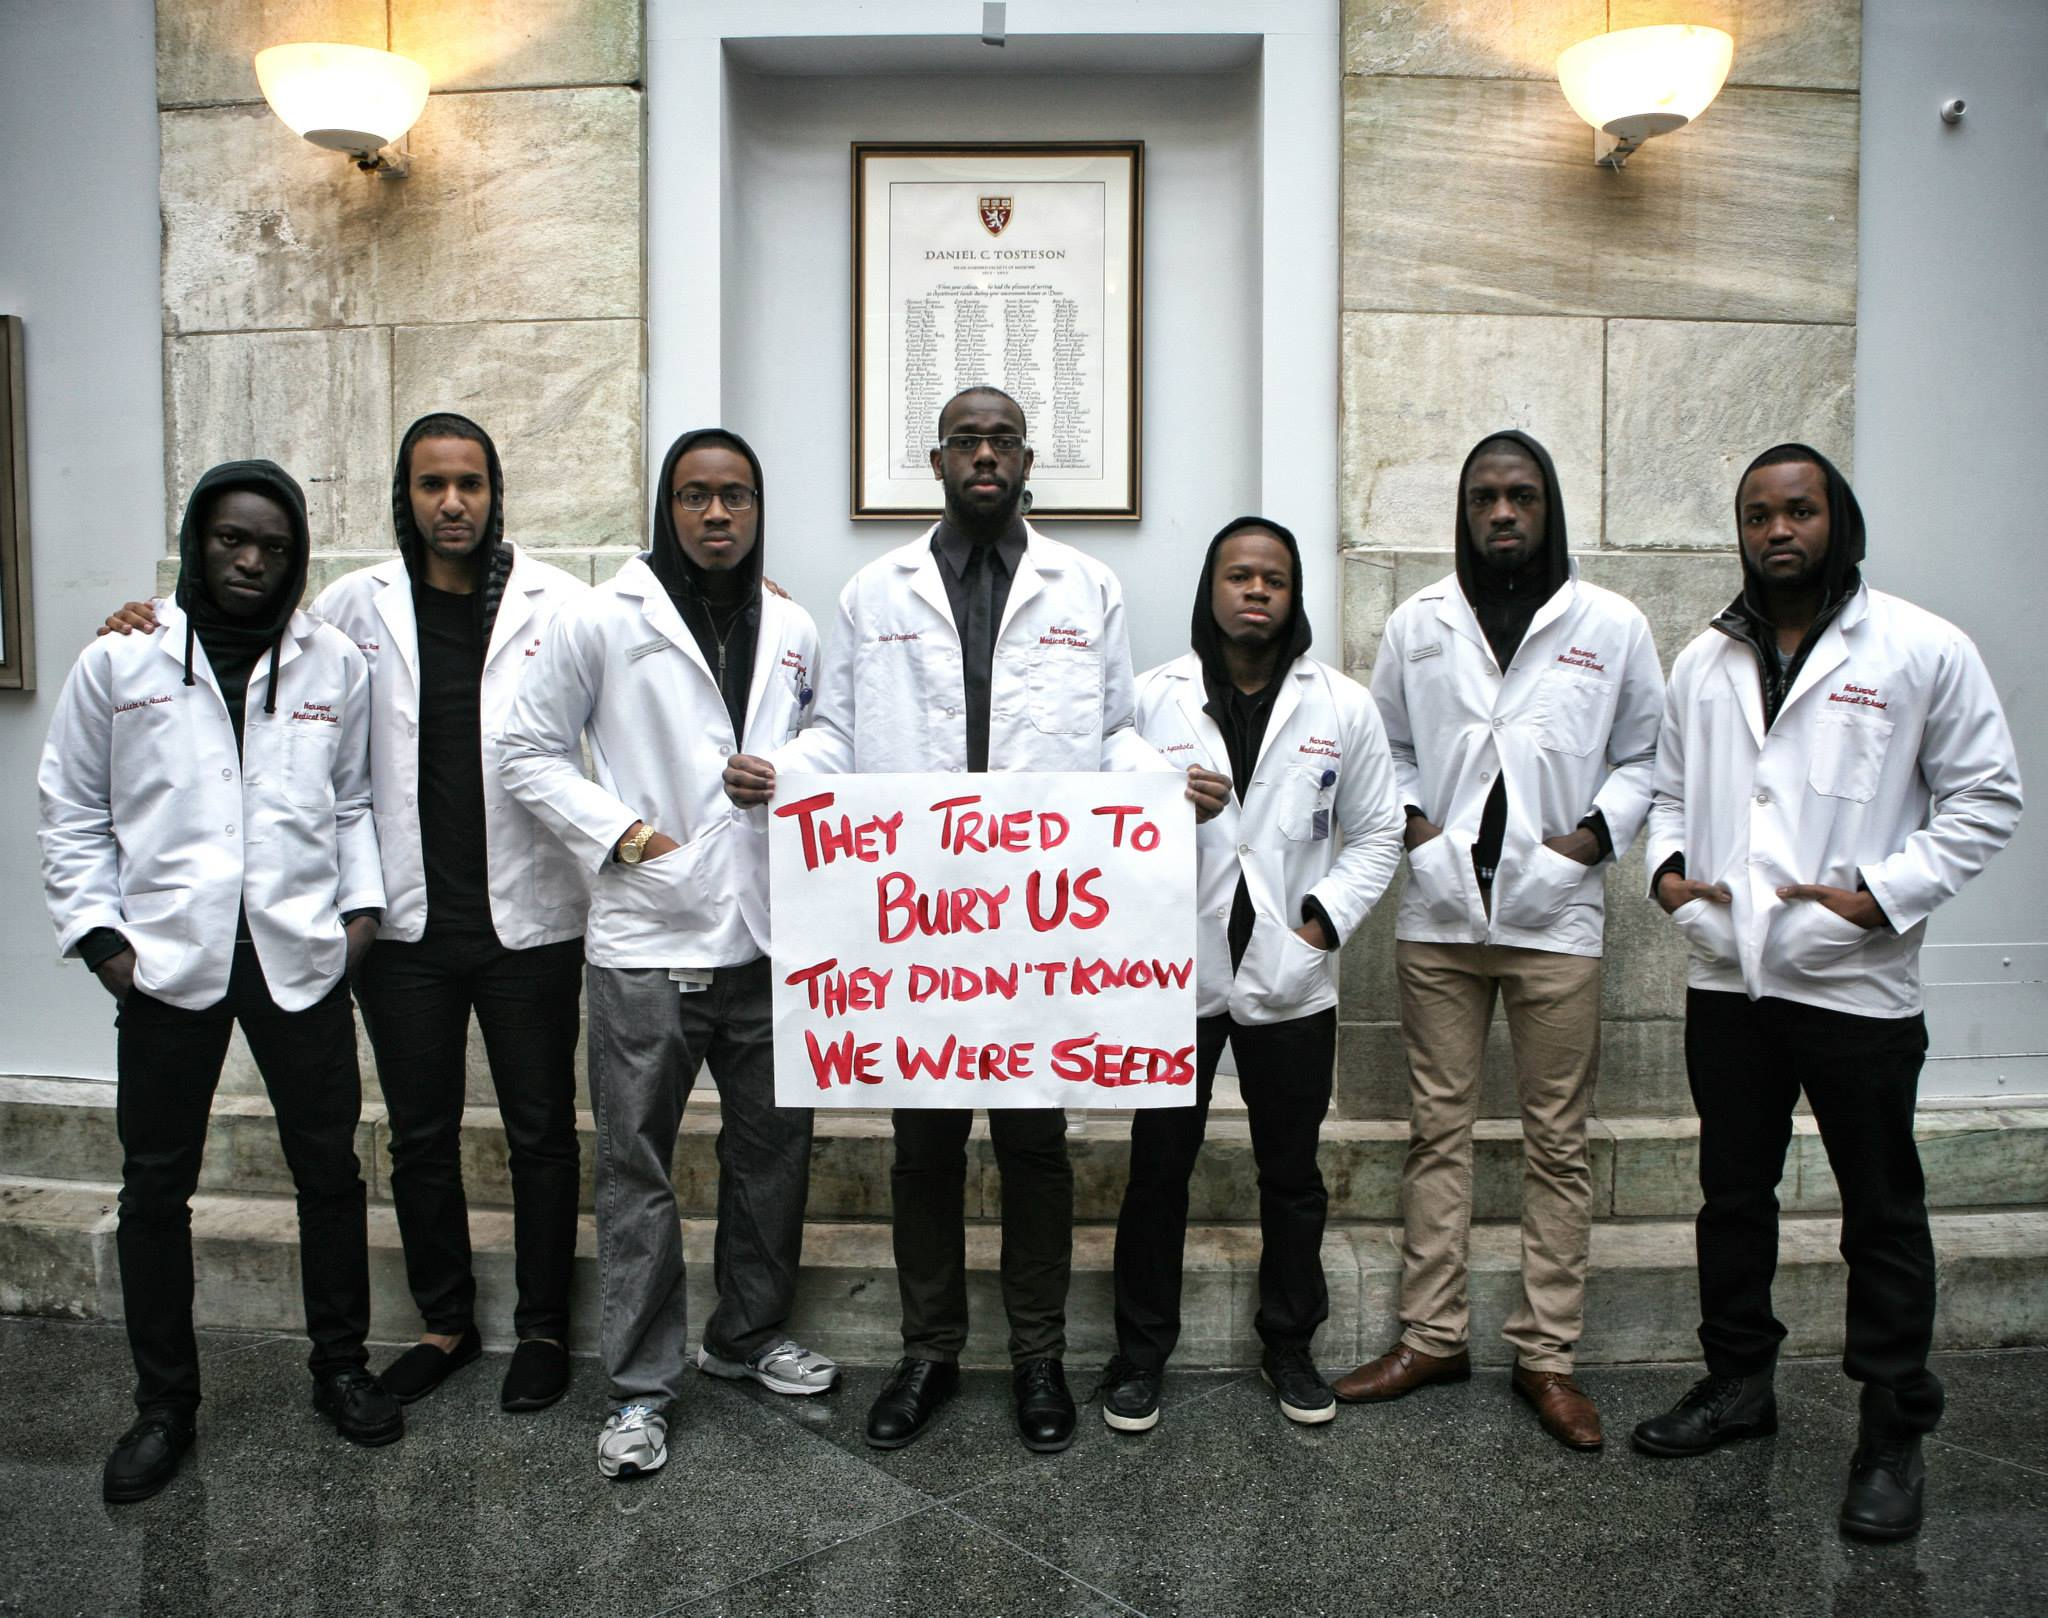 """Picture courtesy of  Chidi Akusobi  (far left). In this powerful photo from 2014, Chidi and a group of his classmates from Harvard Medical School show their solidarity with the Black Lives Matter movement while carrying an English translation of the famous Mexican proverb """"Quisieron enterrarnos, pero se les olvido que somos semillas."""""""